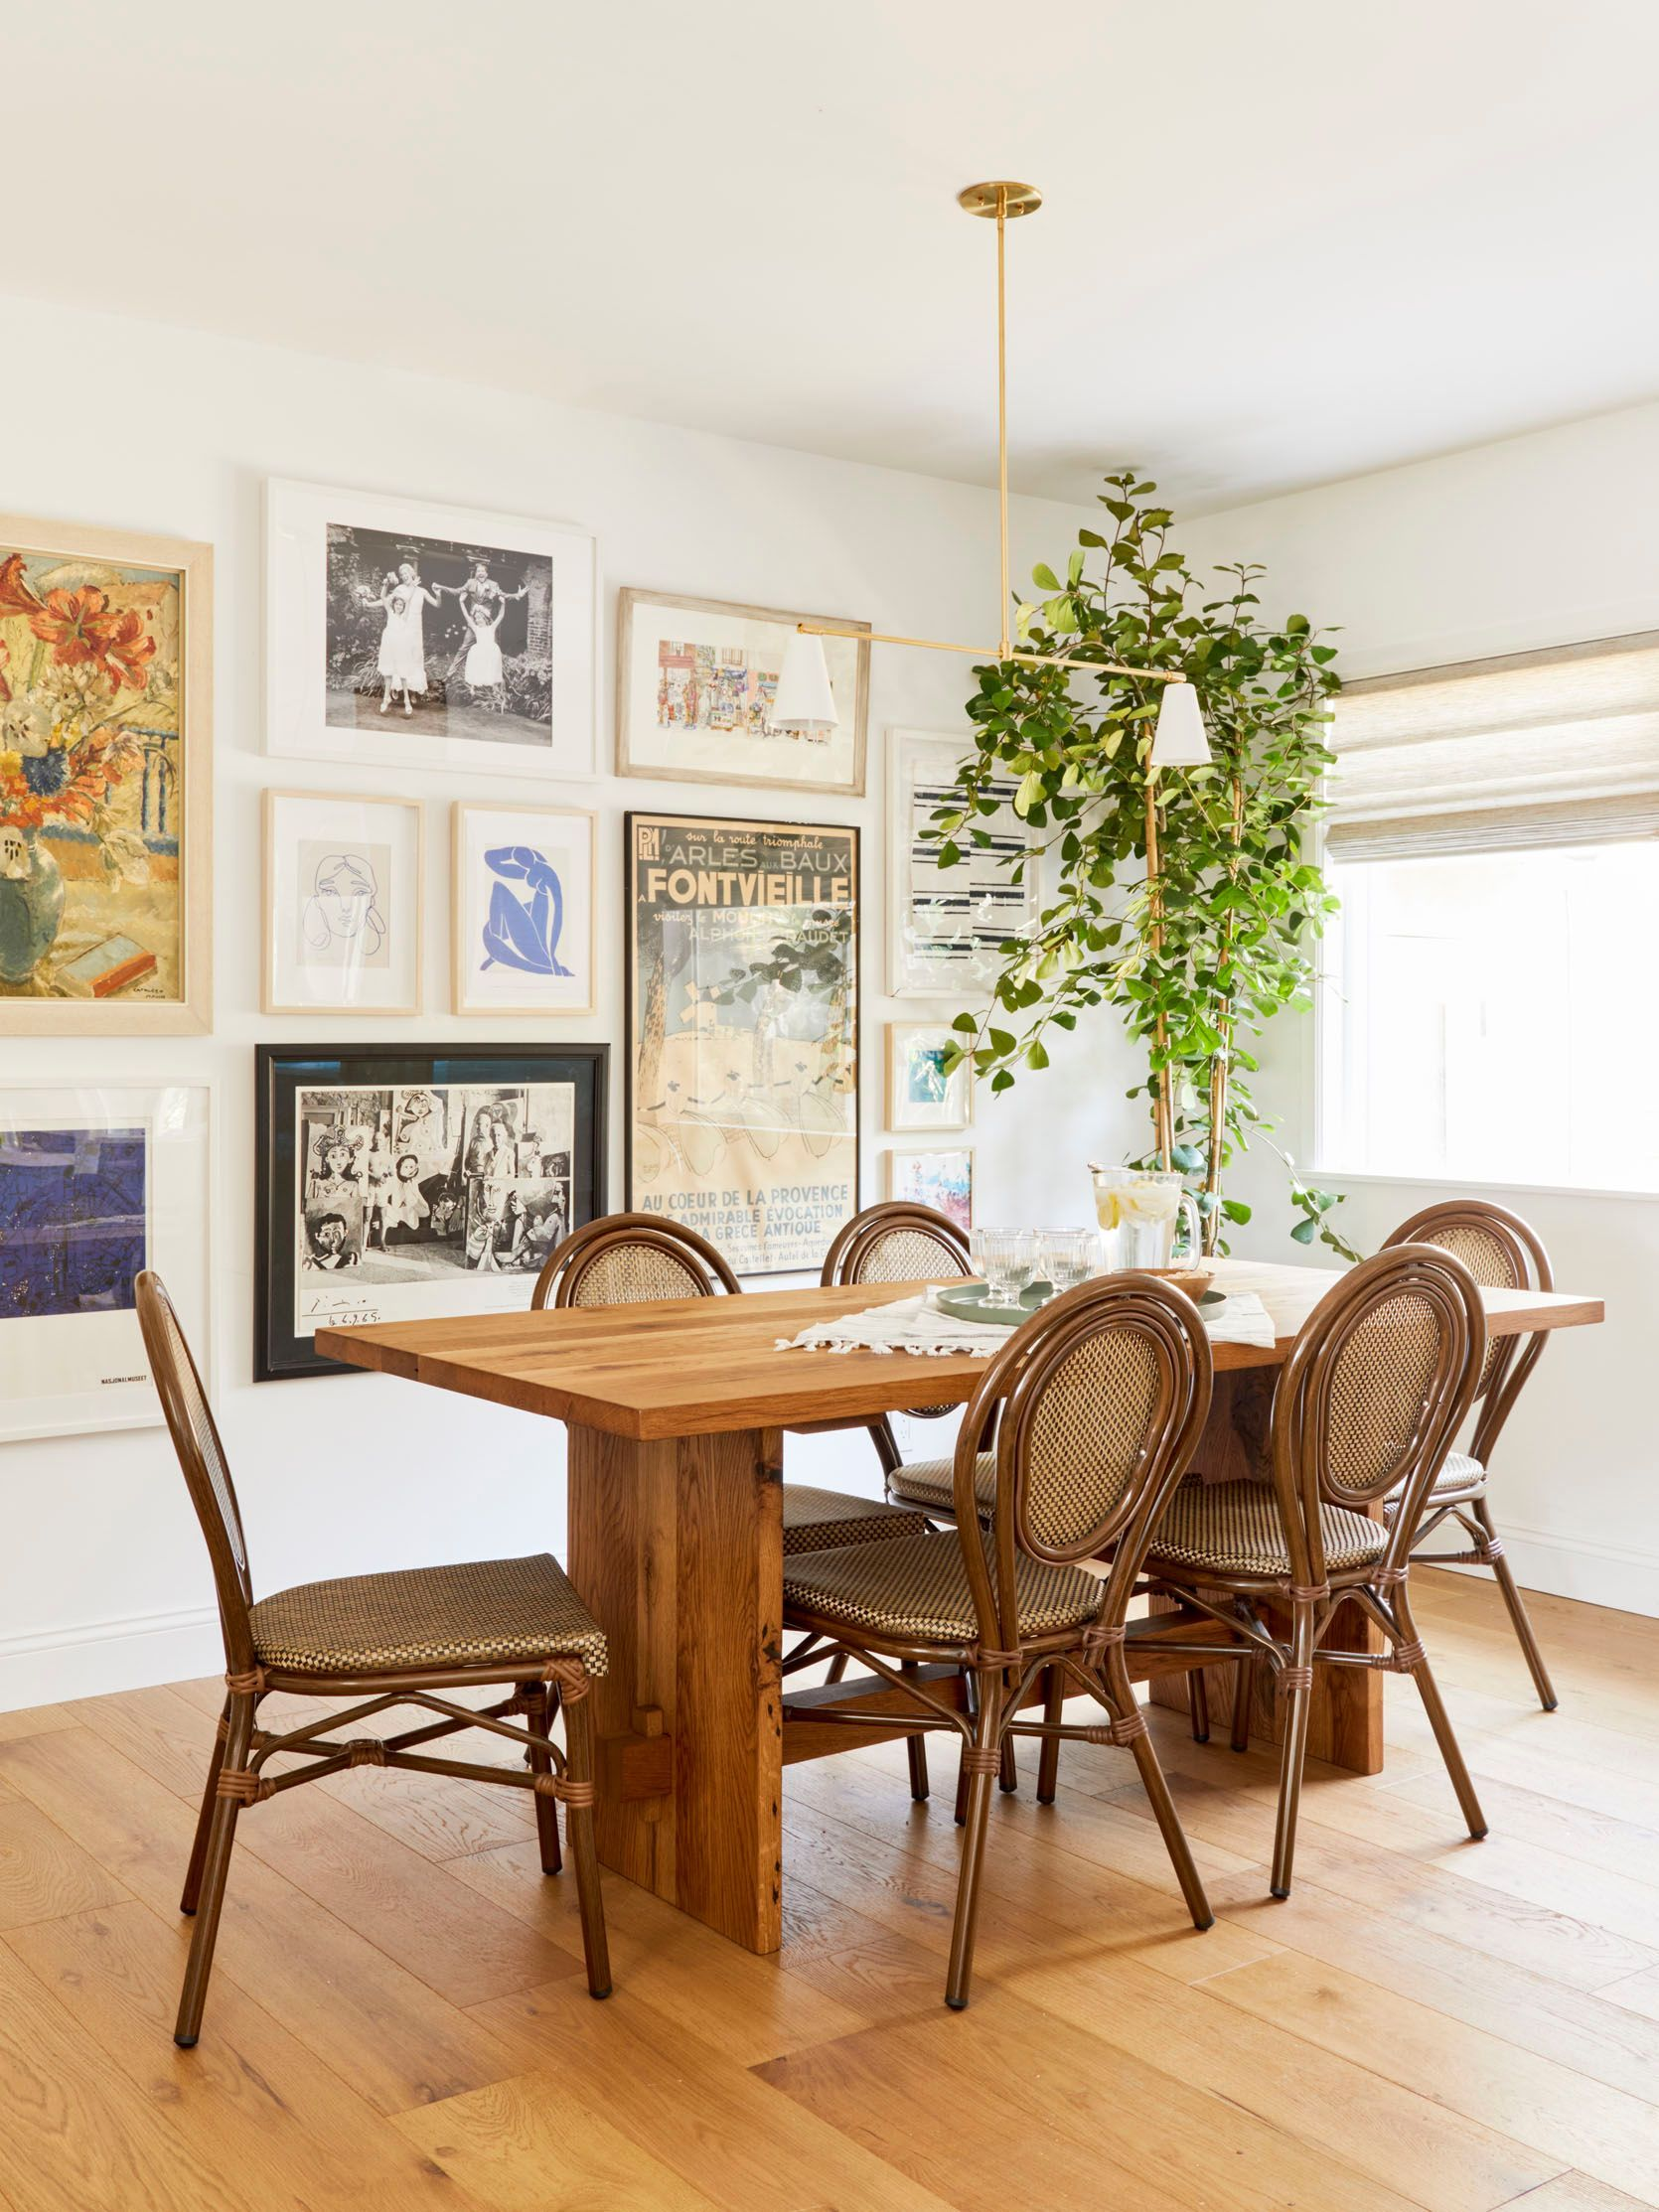 Booth Armadale Residence Travi Walton Architecture Dining Room Small Dining Room Design Dining Room Inspiration